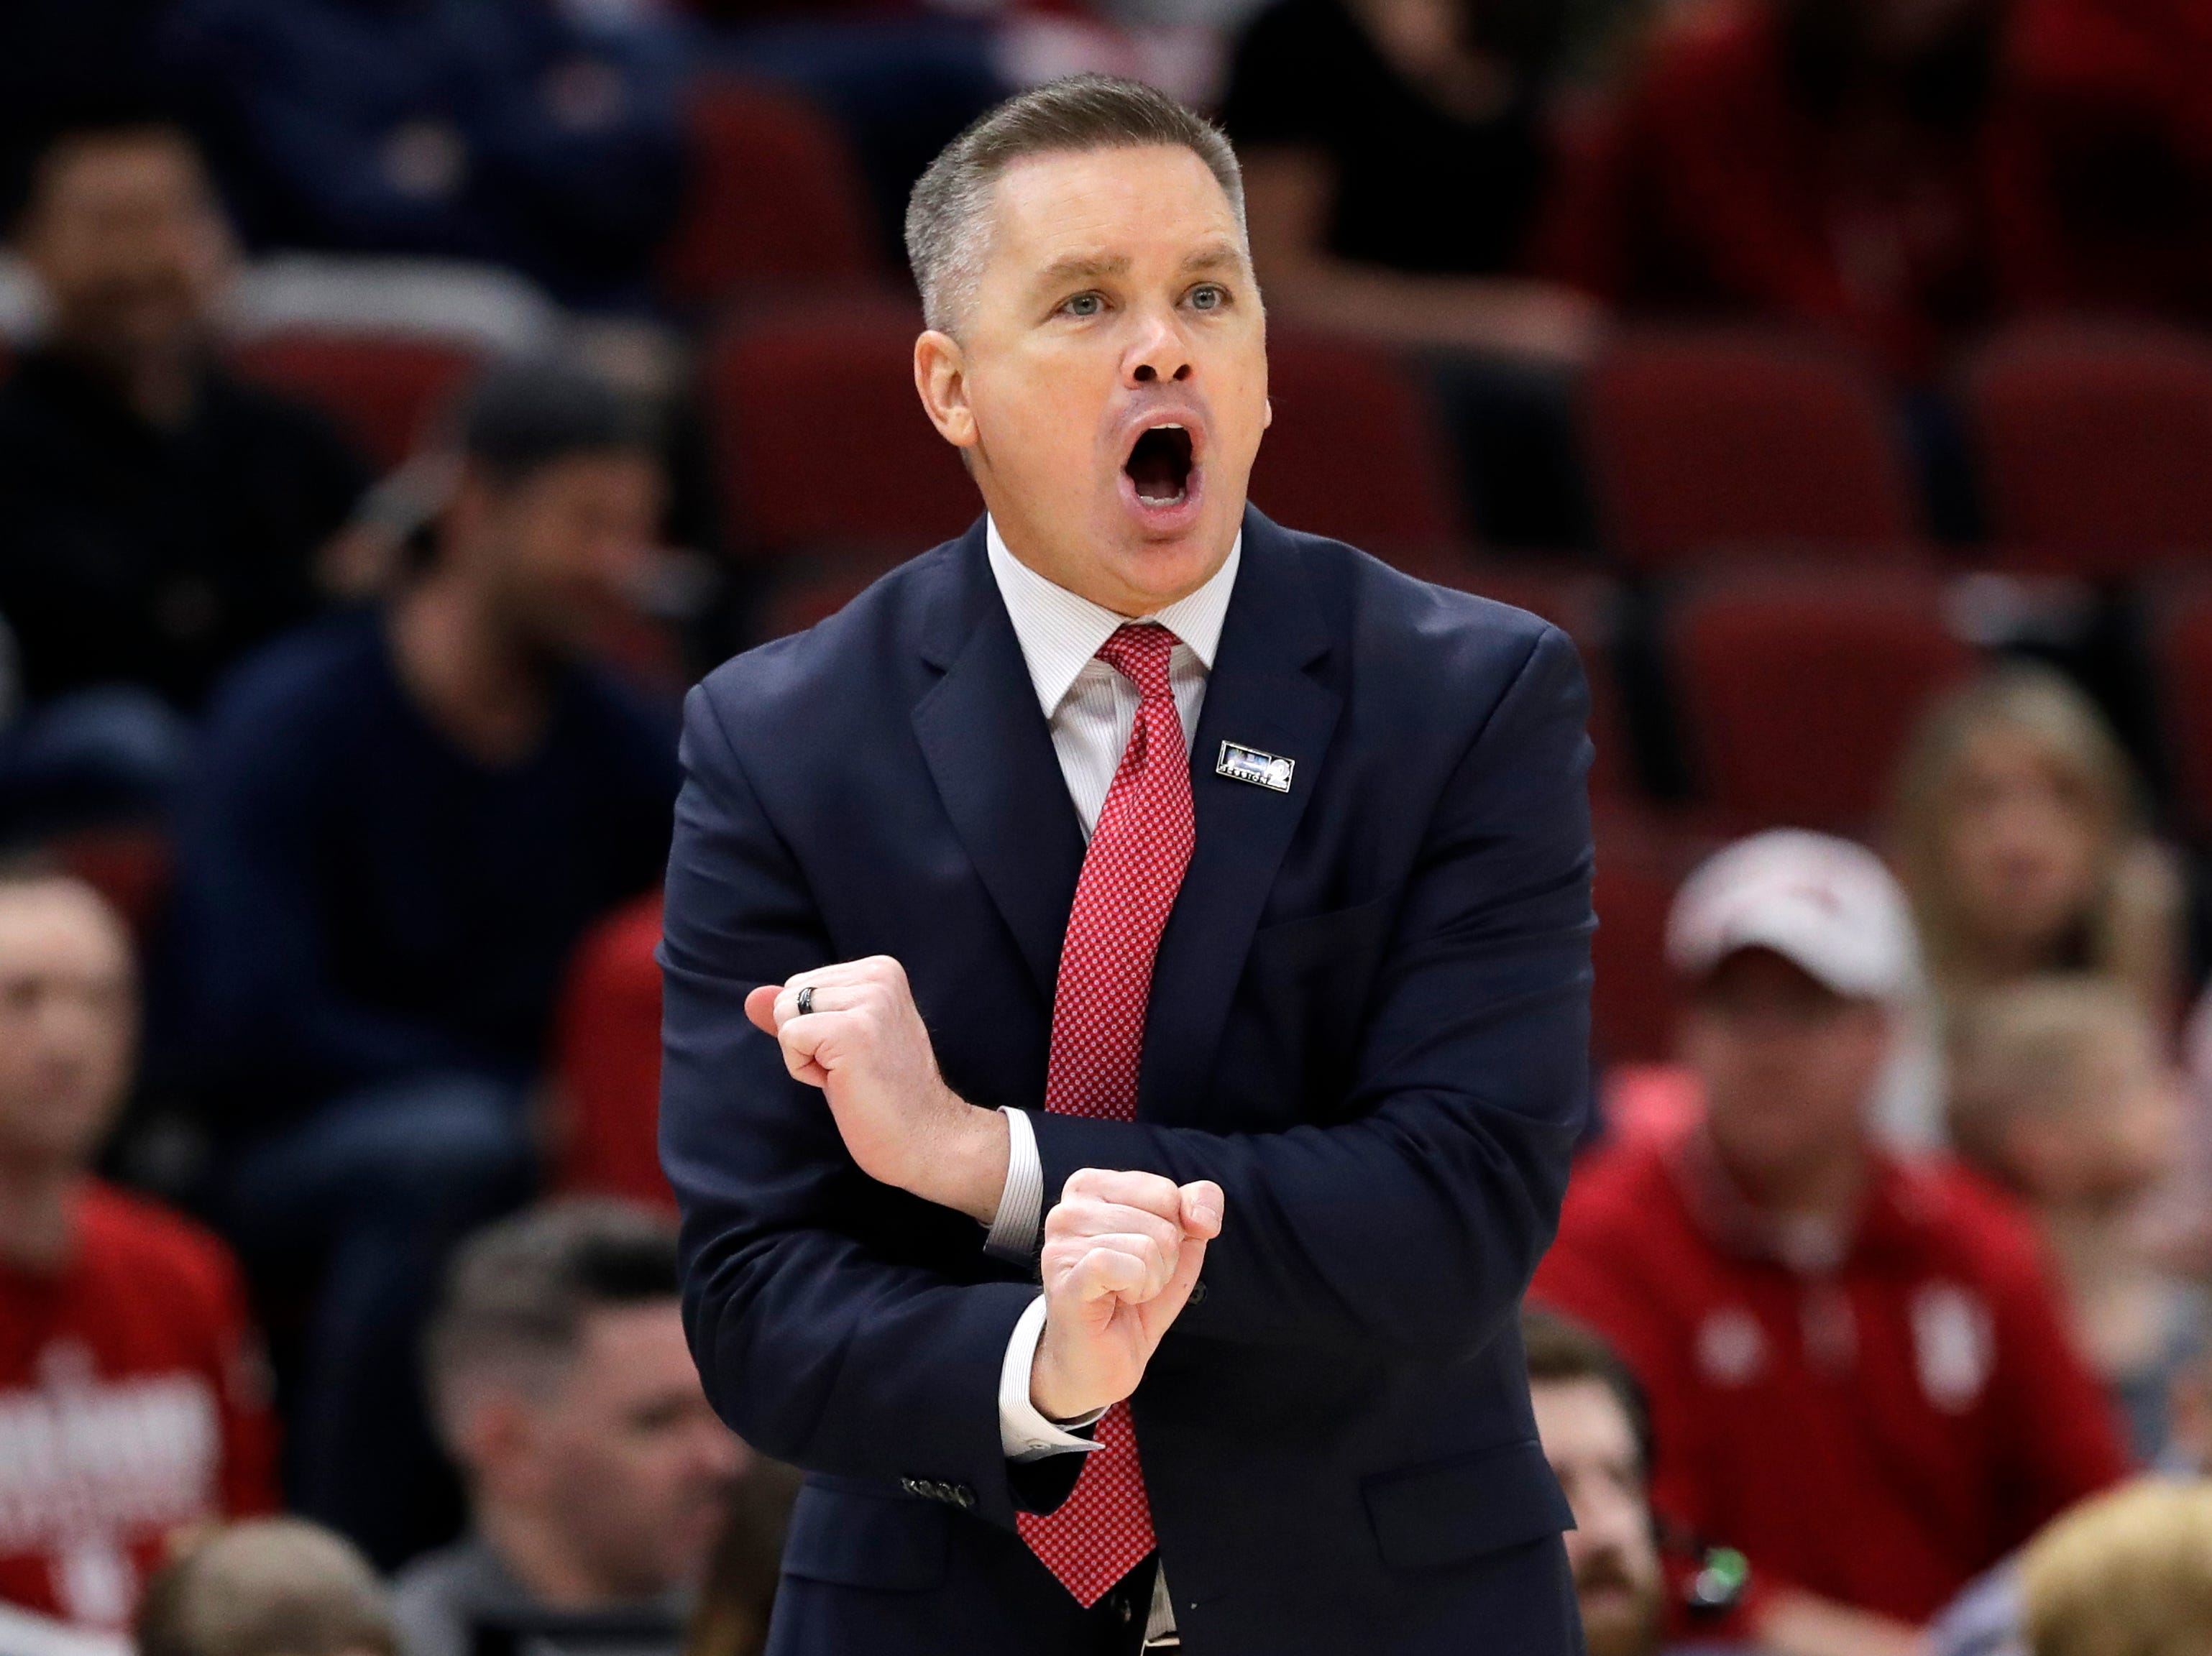 Ohio State head coach Chris Holtmann directs his team during the first half of an NCAA college basketball game against the Indiana in the second round of the Big Ten Conference tournament, Thursday, March 14, 2019, in Chicago. (AP Photo/Nam Y. Huh)